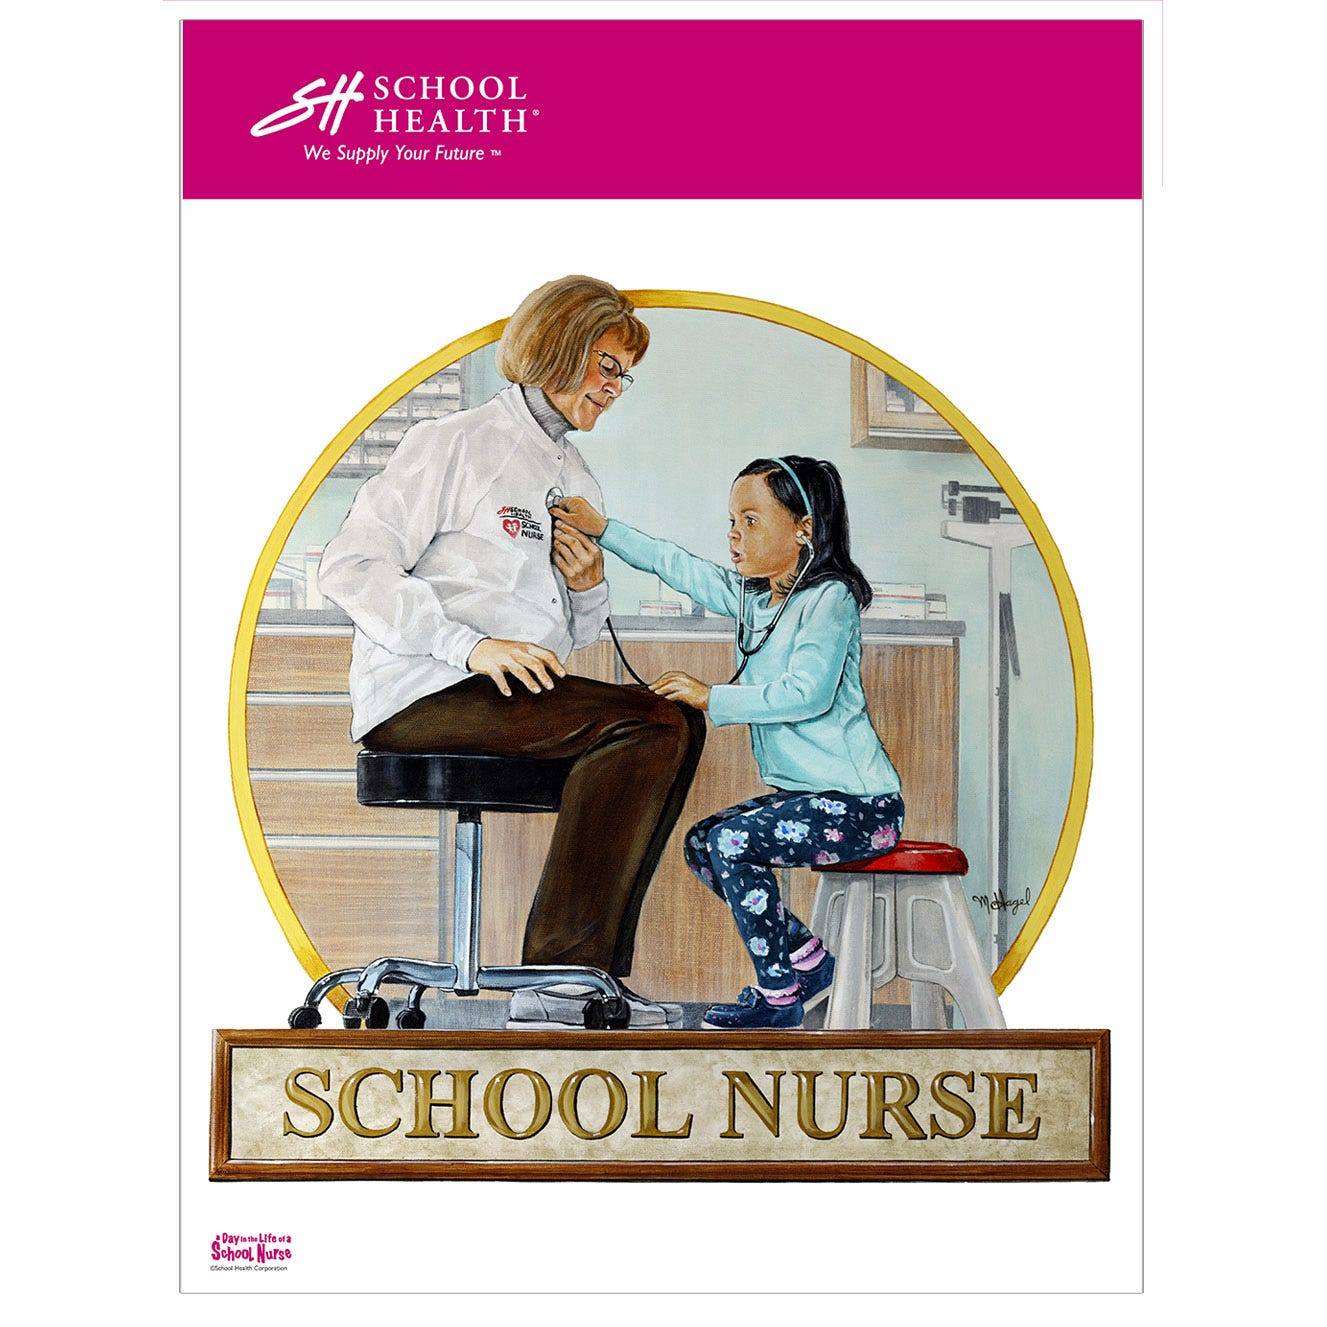 2019 Health Services Catalog Poster